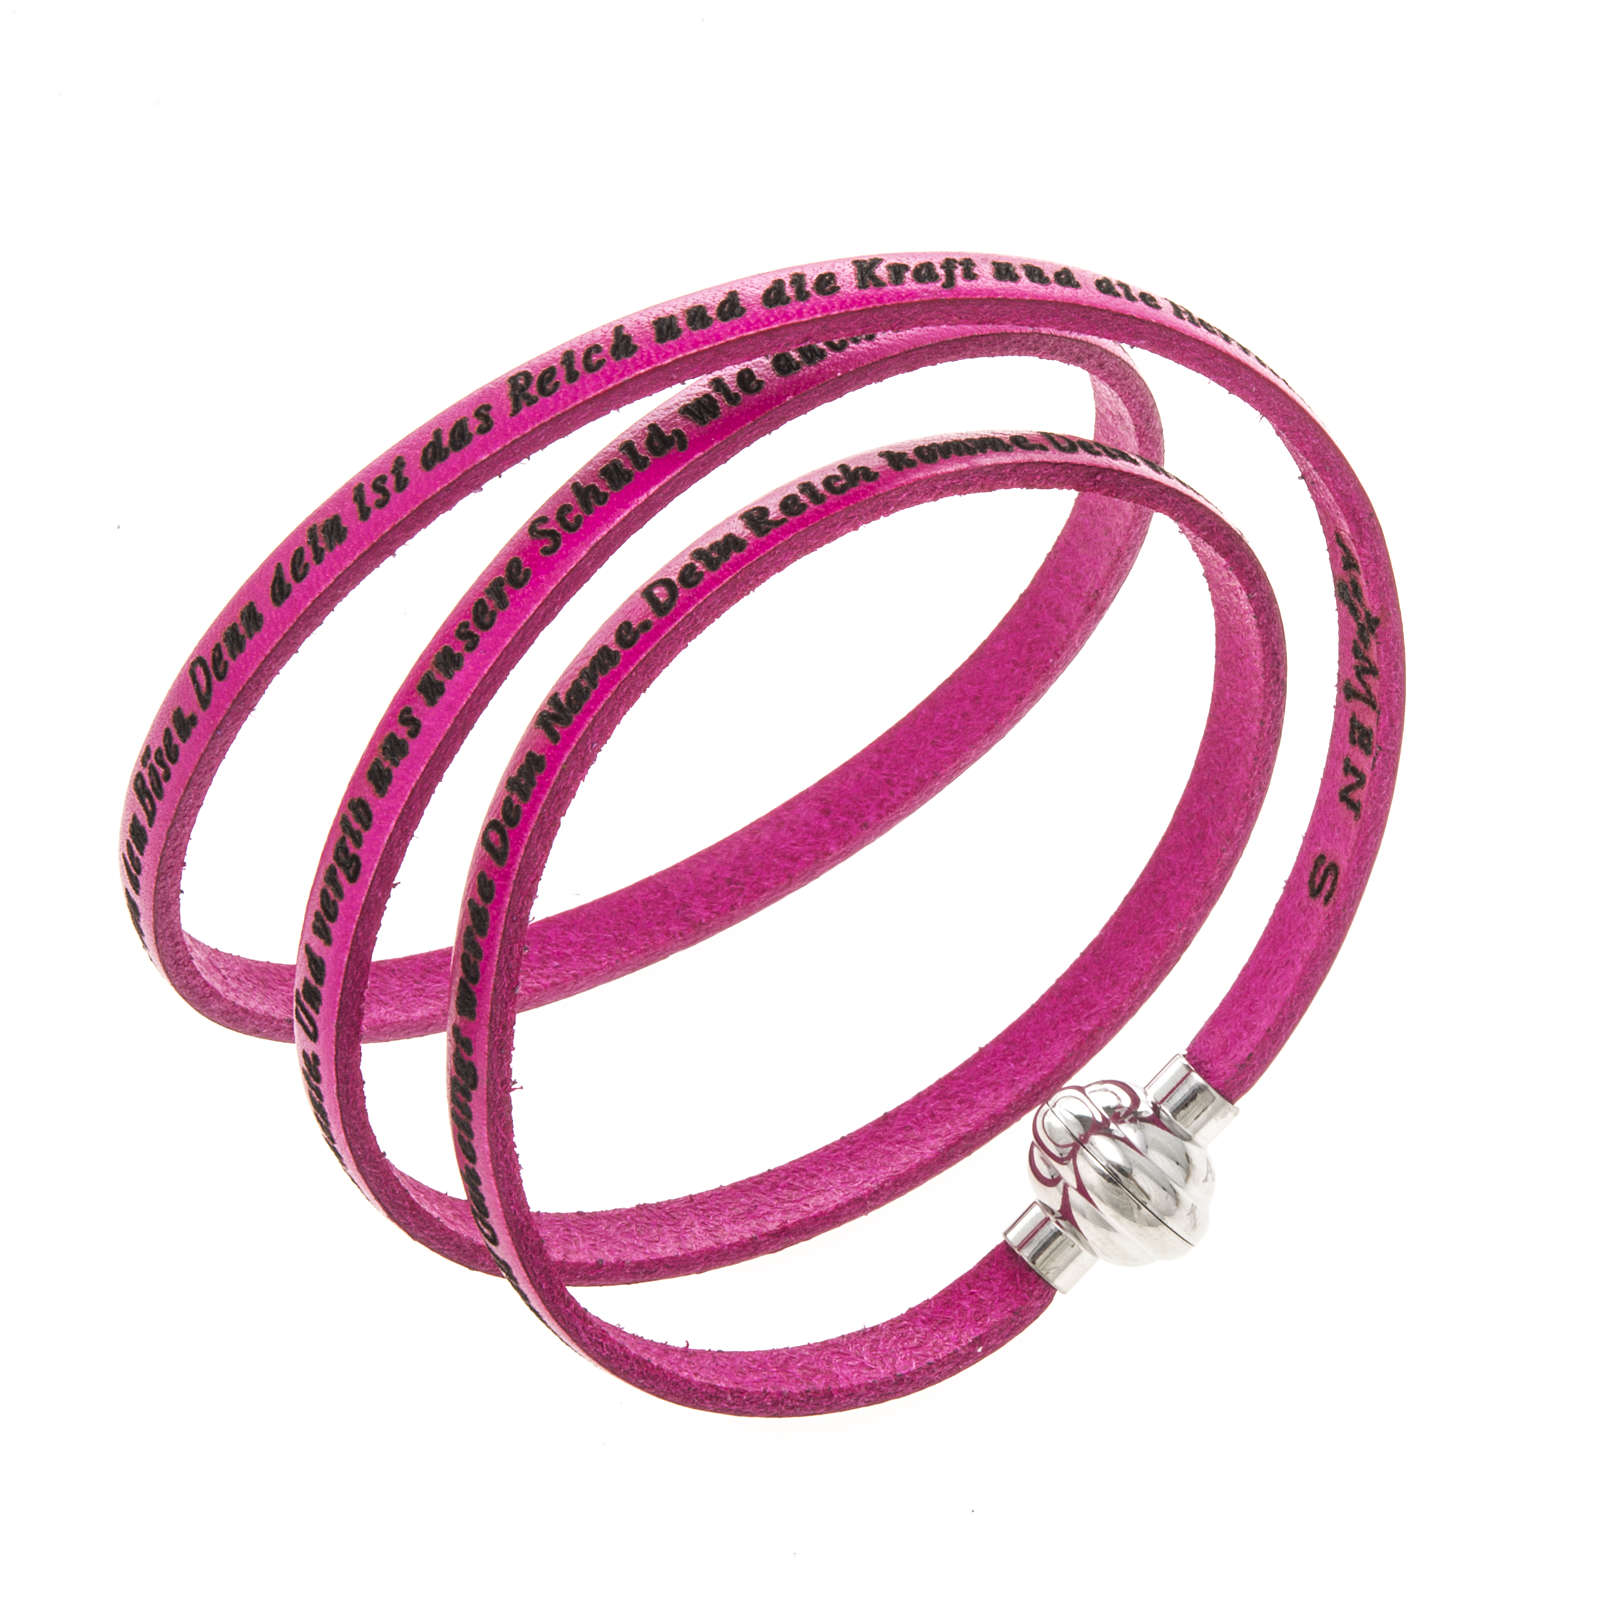 Amen Bracelet in fuchsia leather Our Father GER 4